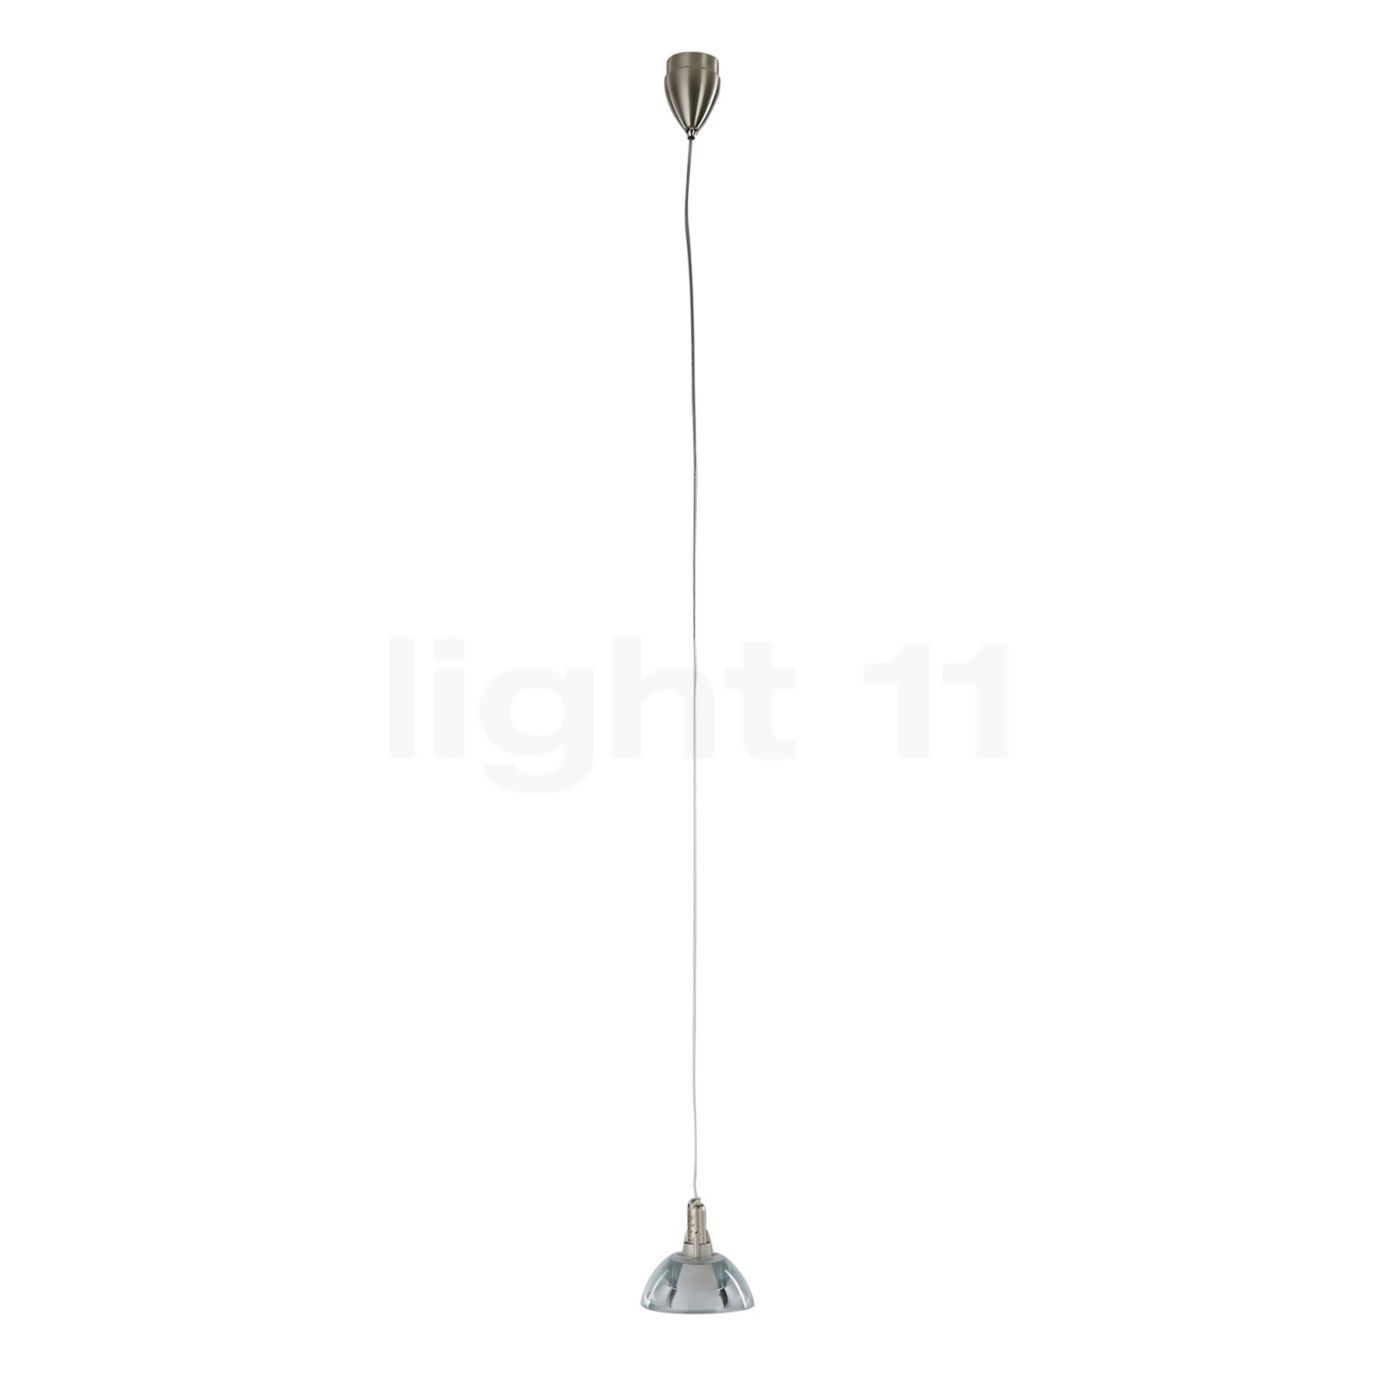 Lumina Galileo Mini T Pendant lights buy at light11.eu.